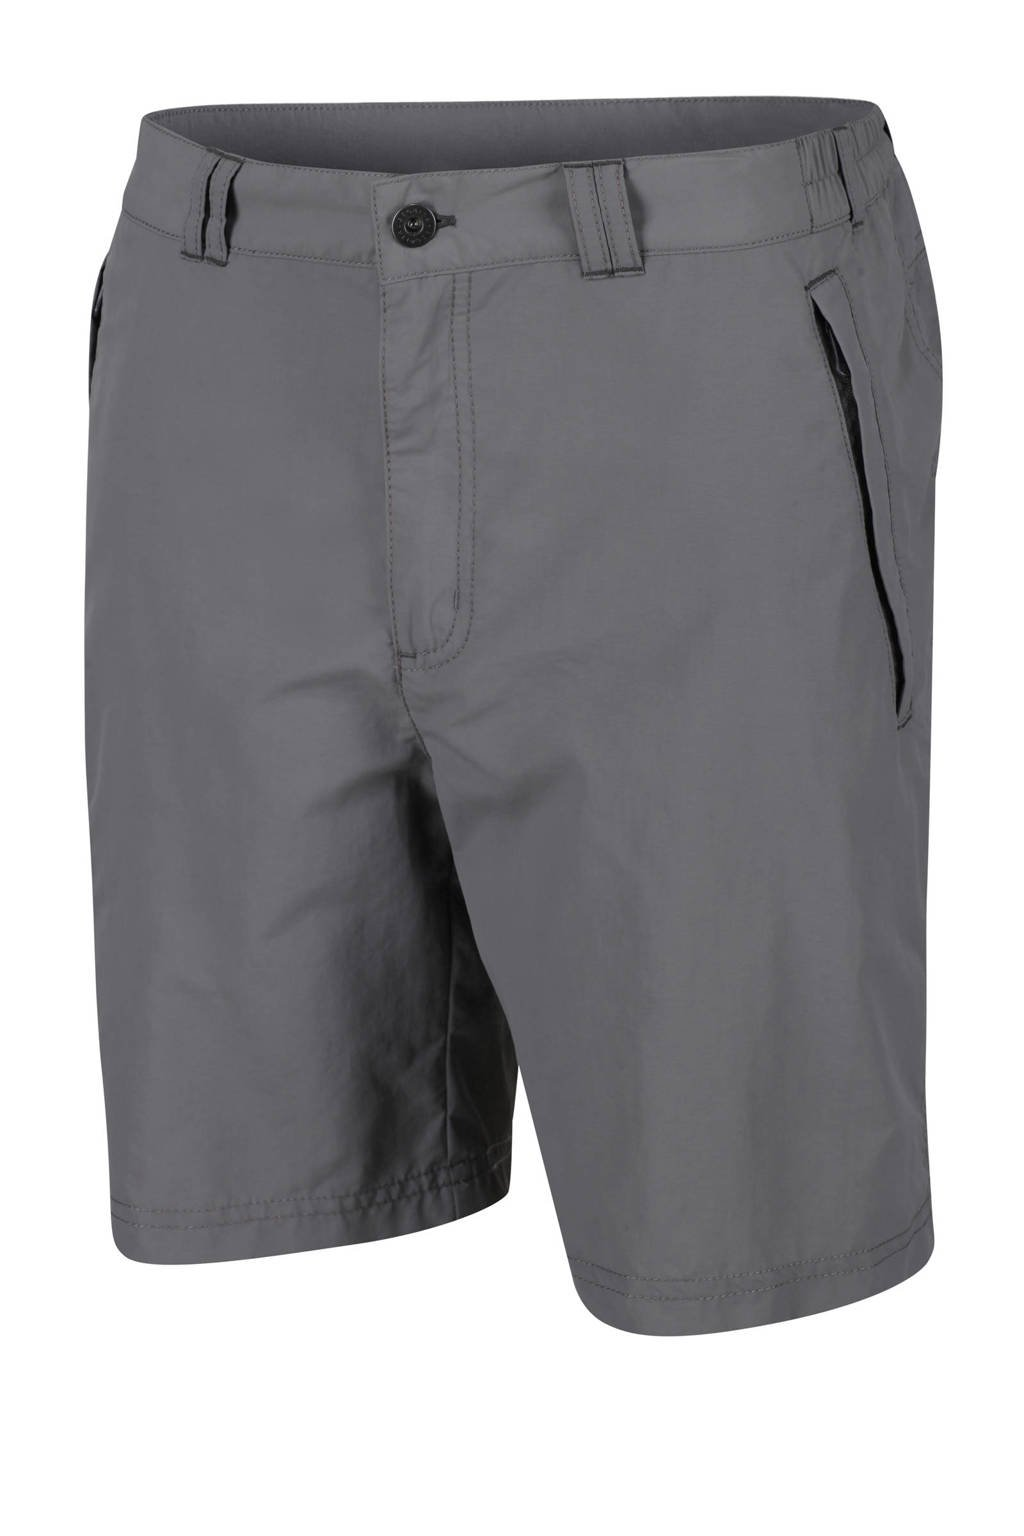 Regatta outdoor short Leesville grijs, Grijs